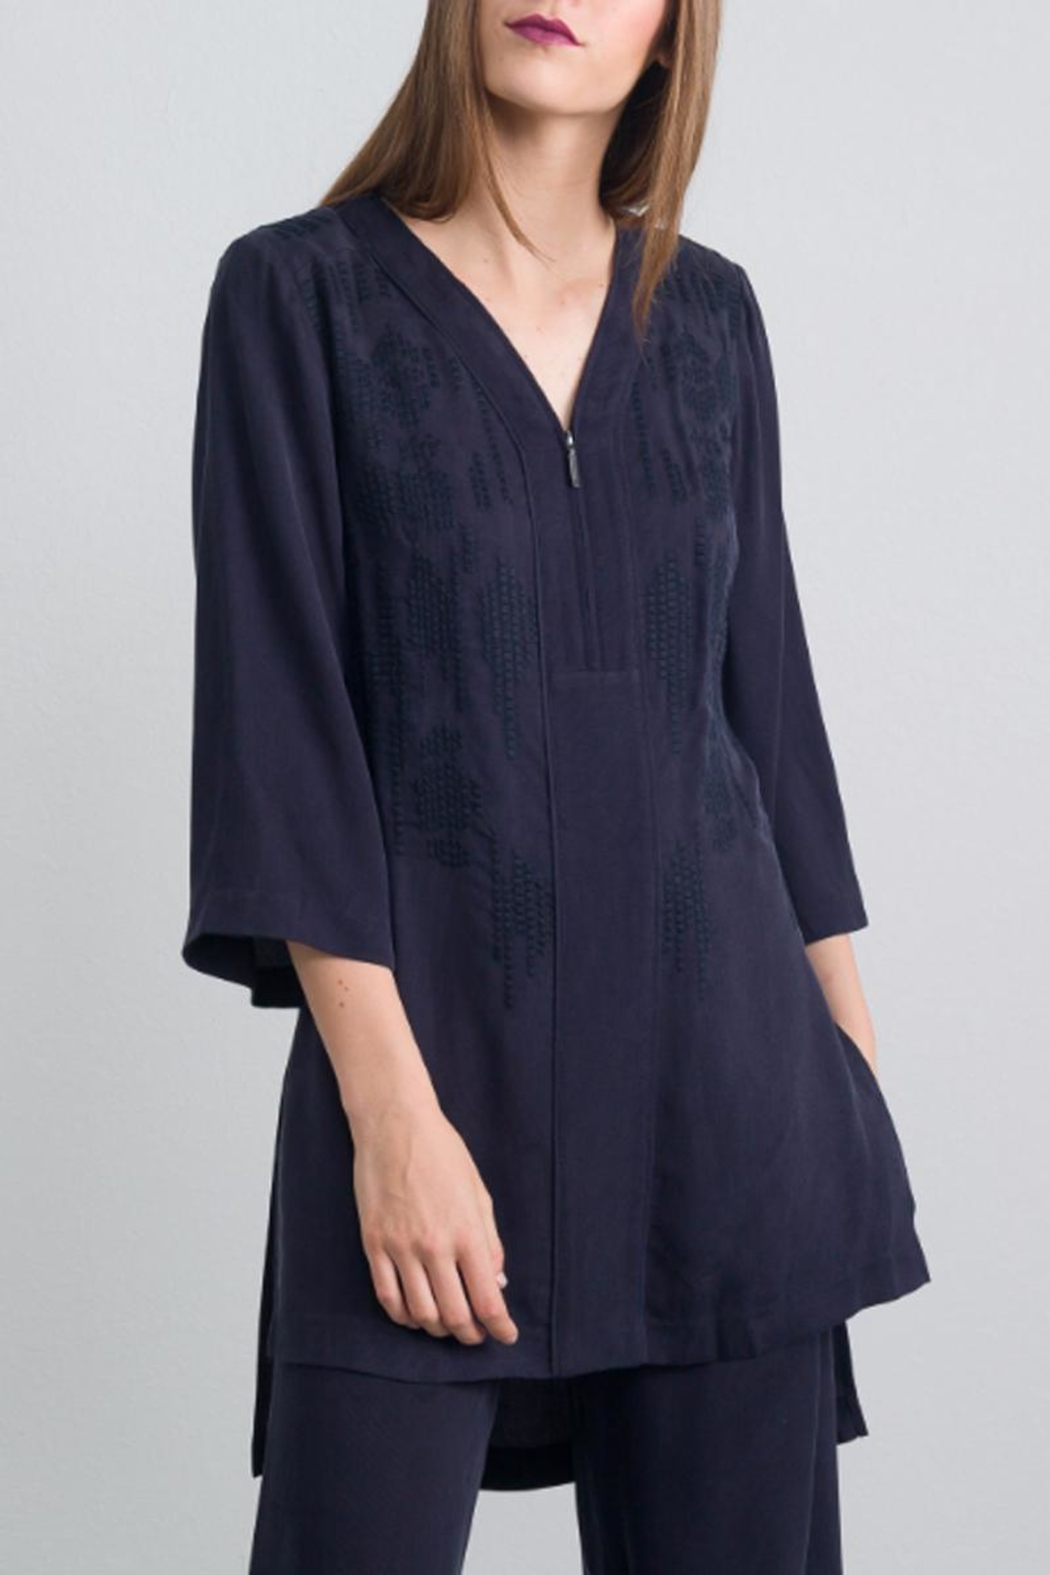 QUINN Embroidered Tunic Top - Main Image